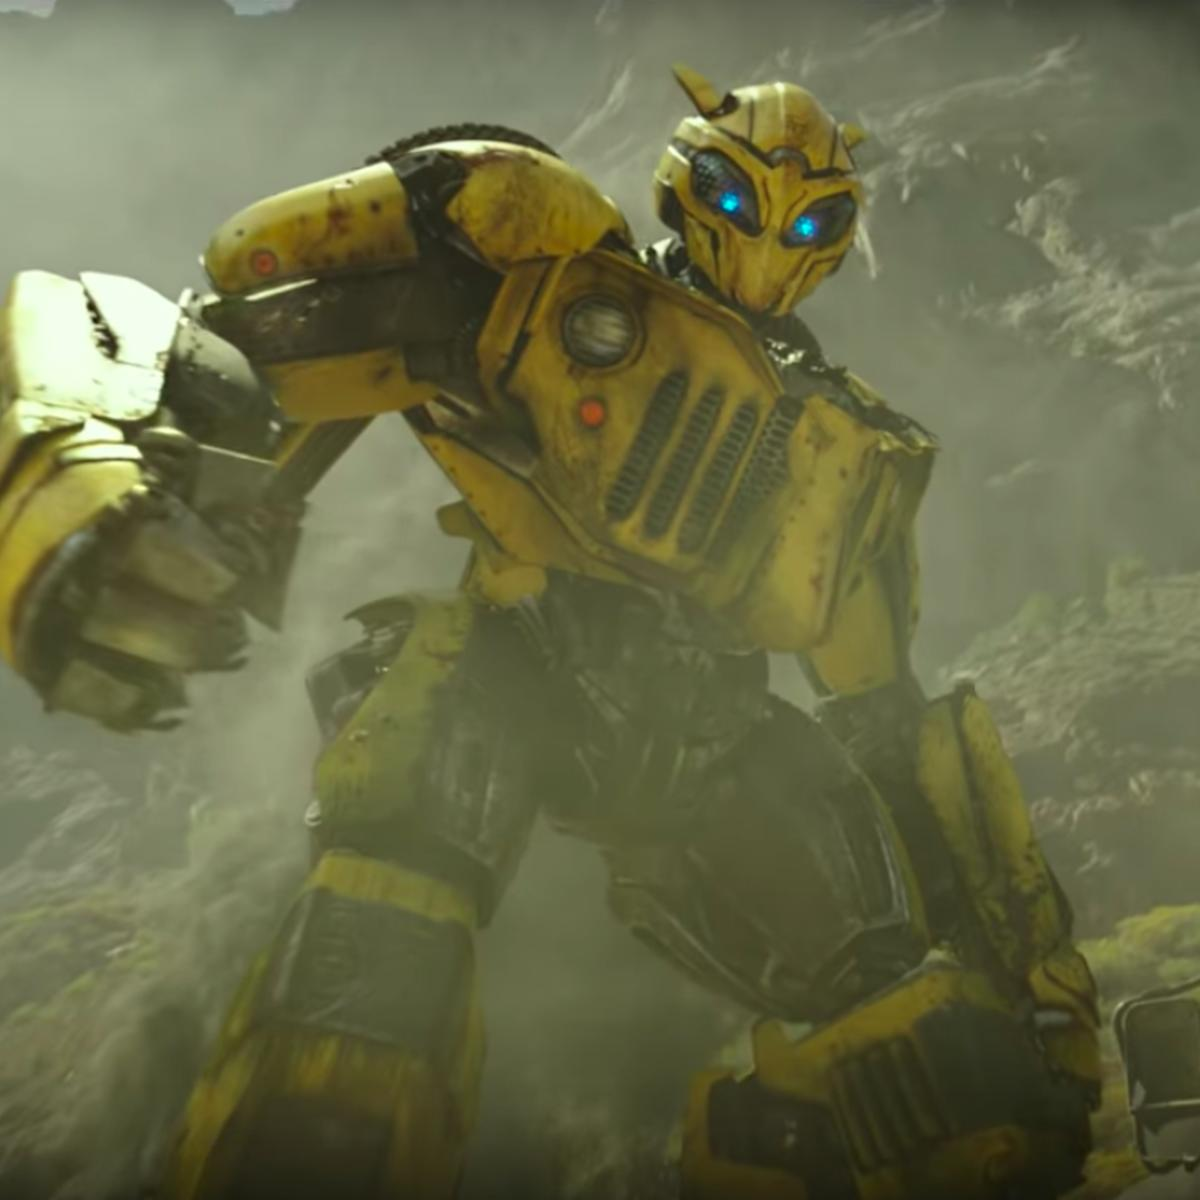 New Bumblebee trailer looks closer to classic Transformers than ever